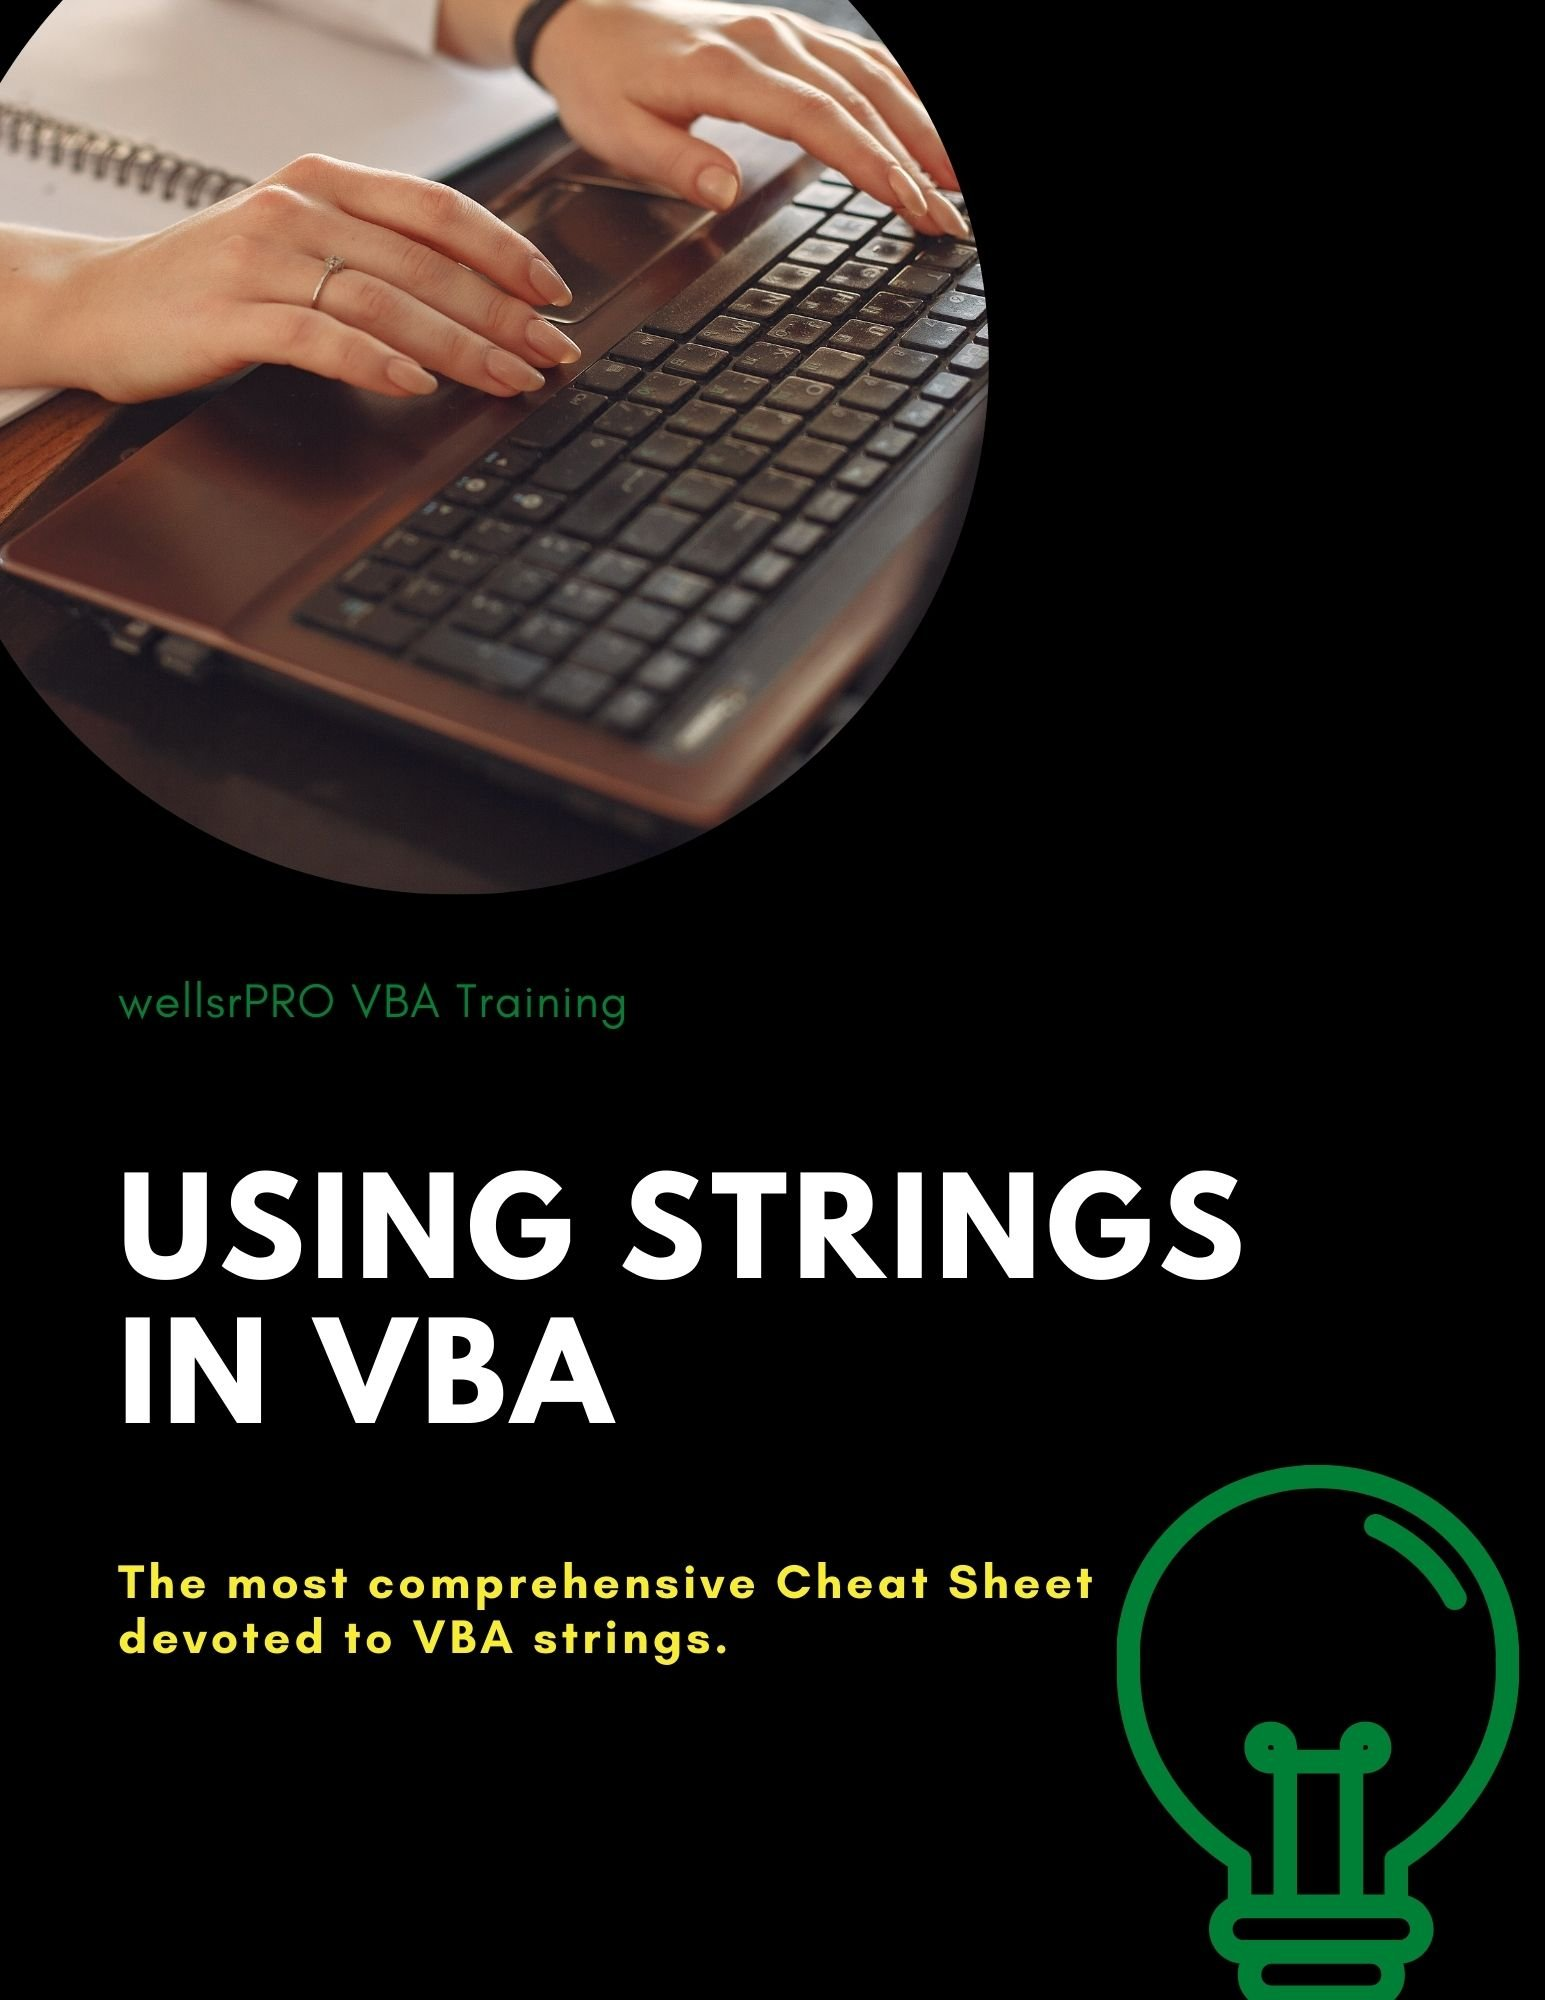 The most comprehensive Cheat Sheet devoted to VBA strings